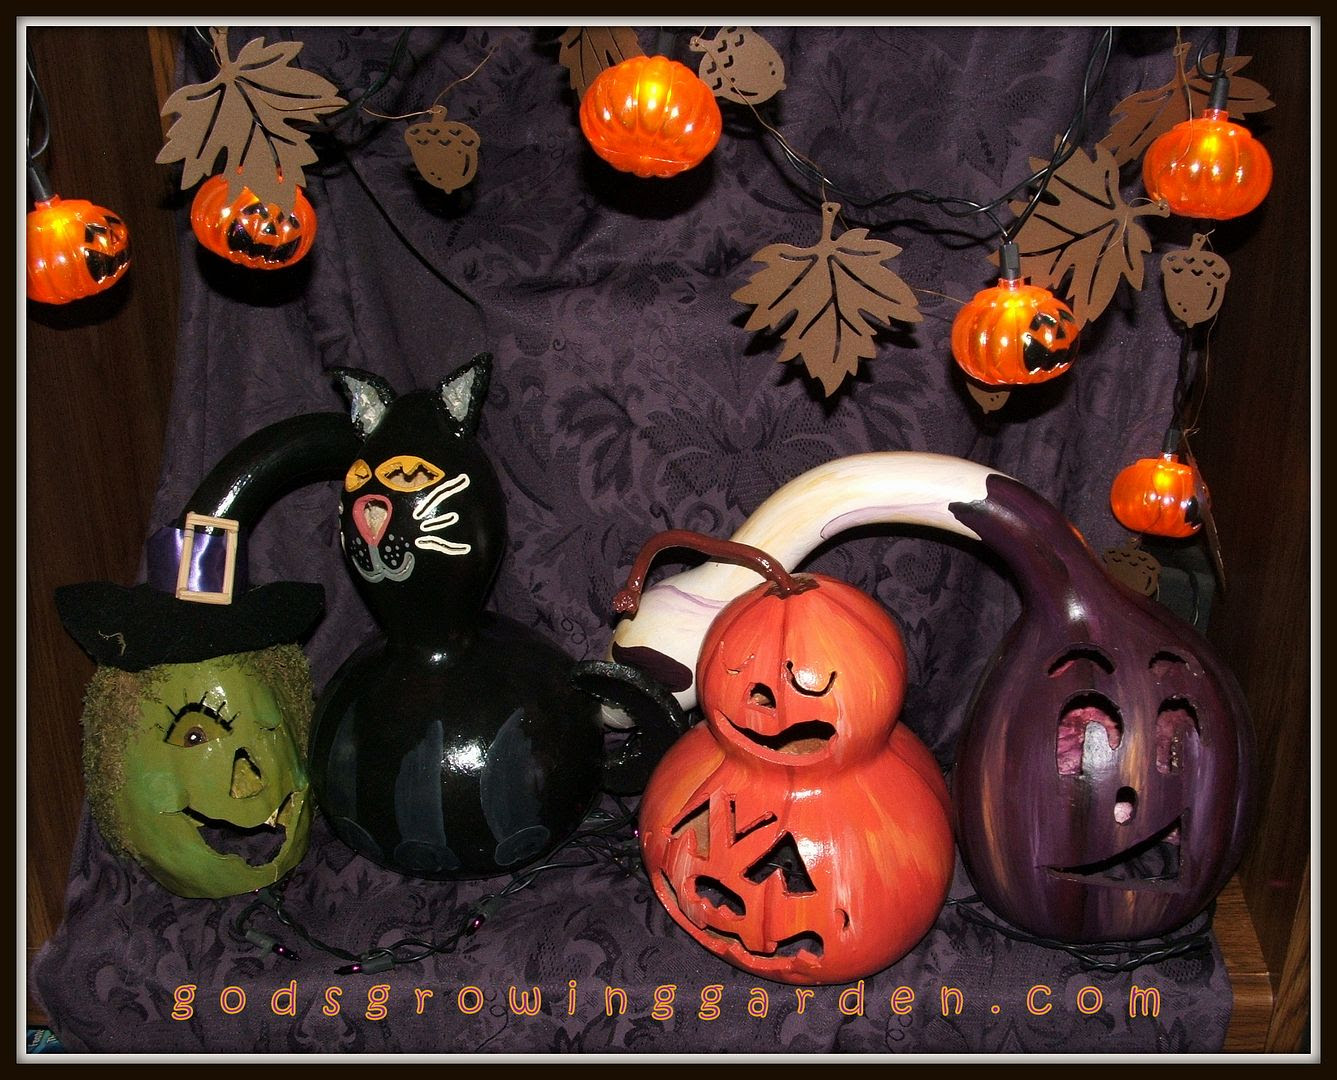 Gourd-o-lantern Babies by Angie Ouellette-Tower for godsgrowinggarden.com photo 010_zps4df6ea4c.jpg